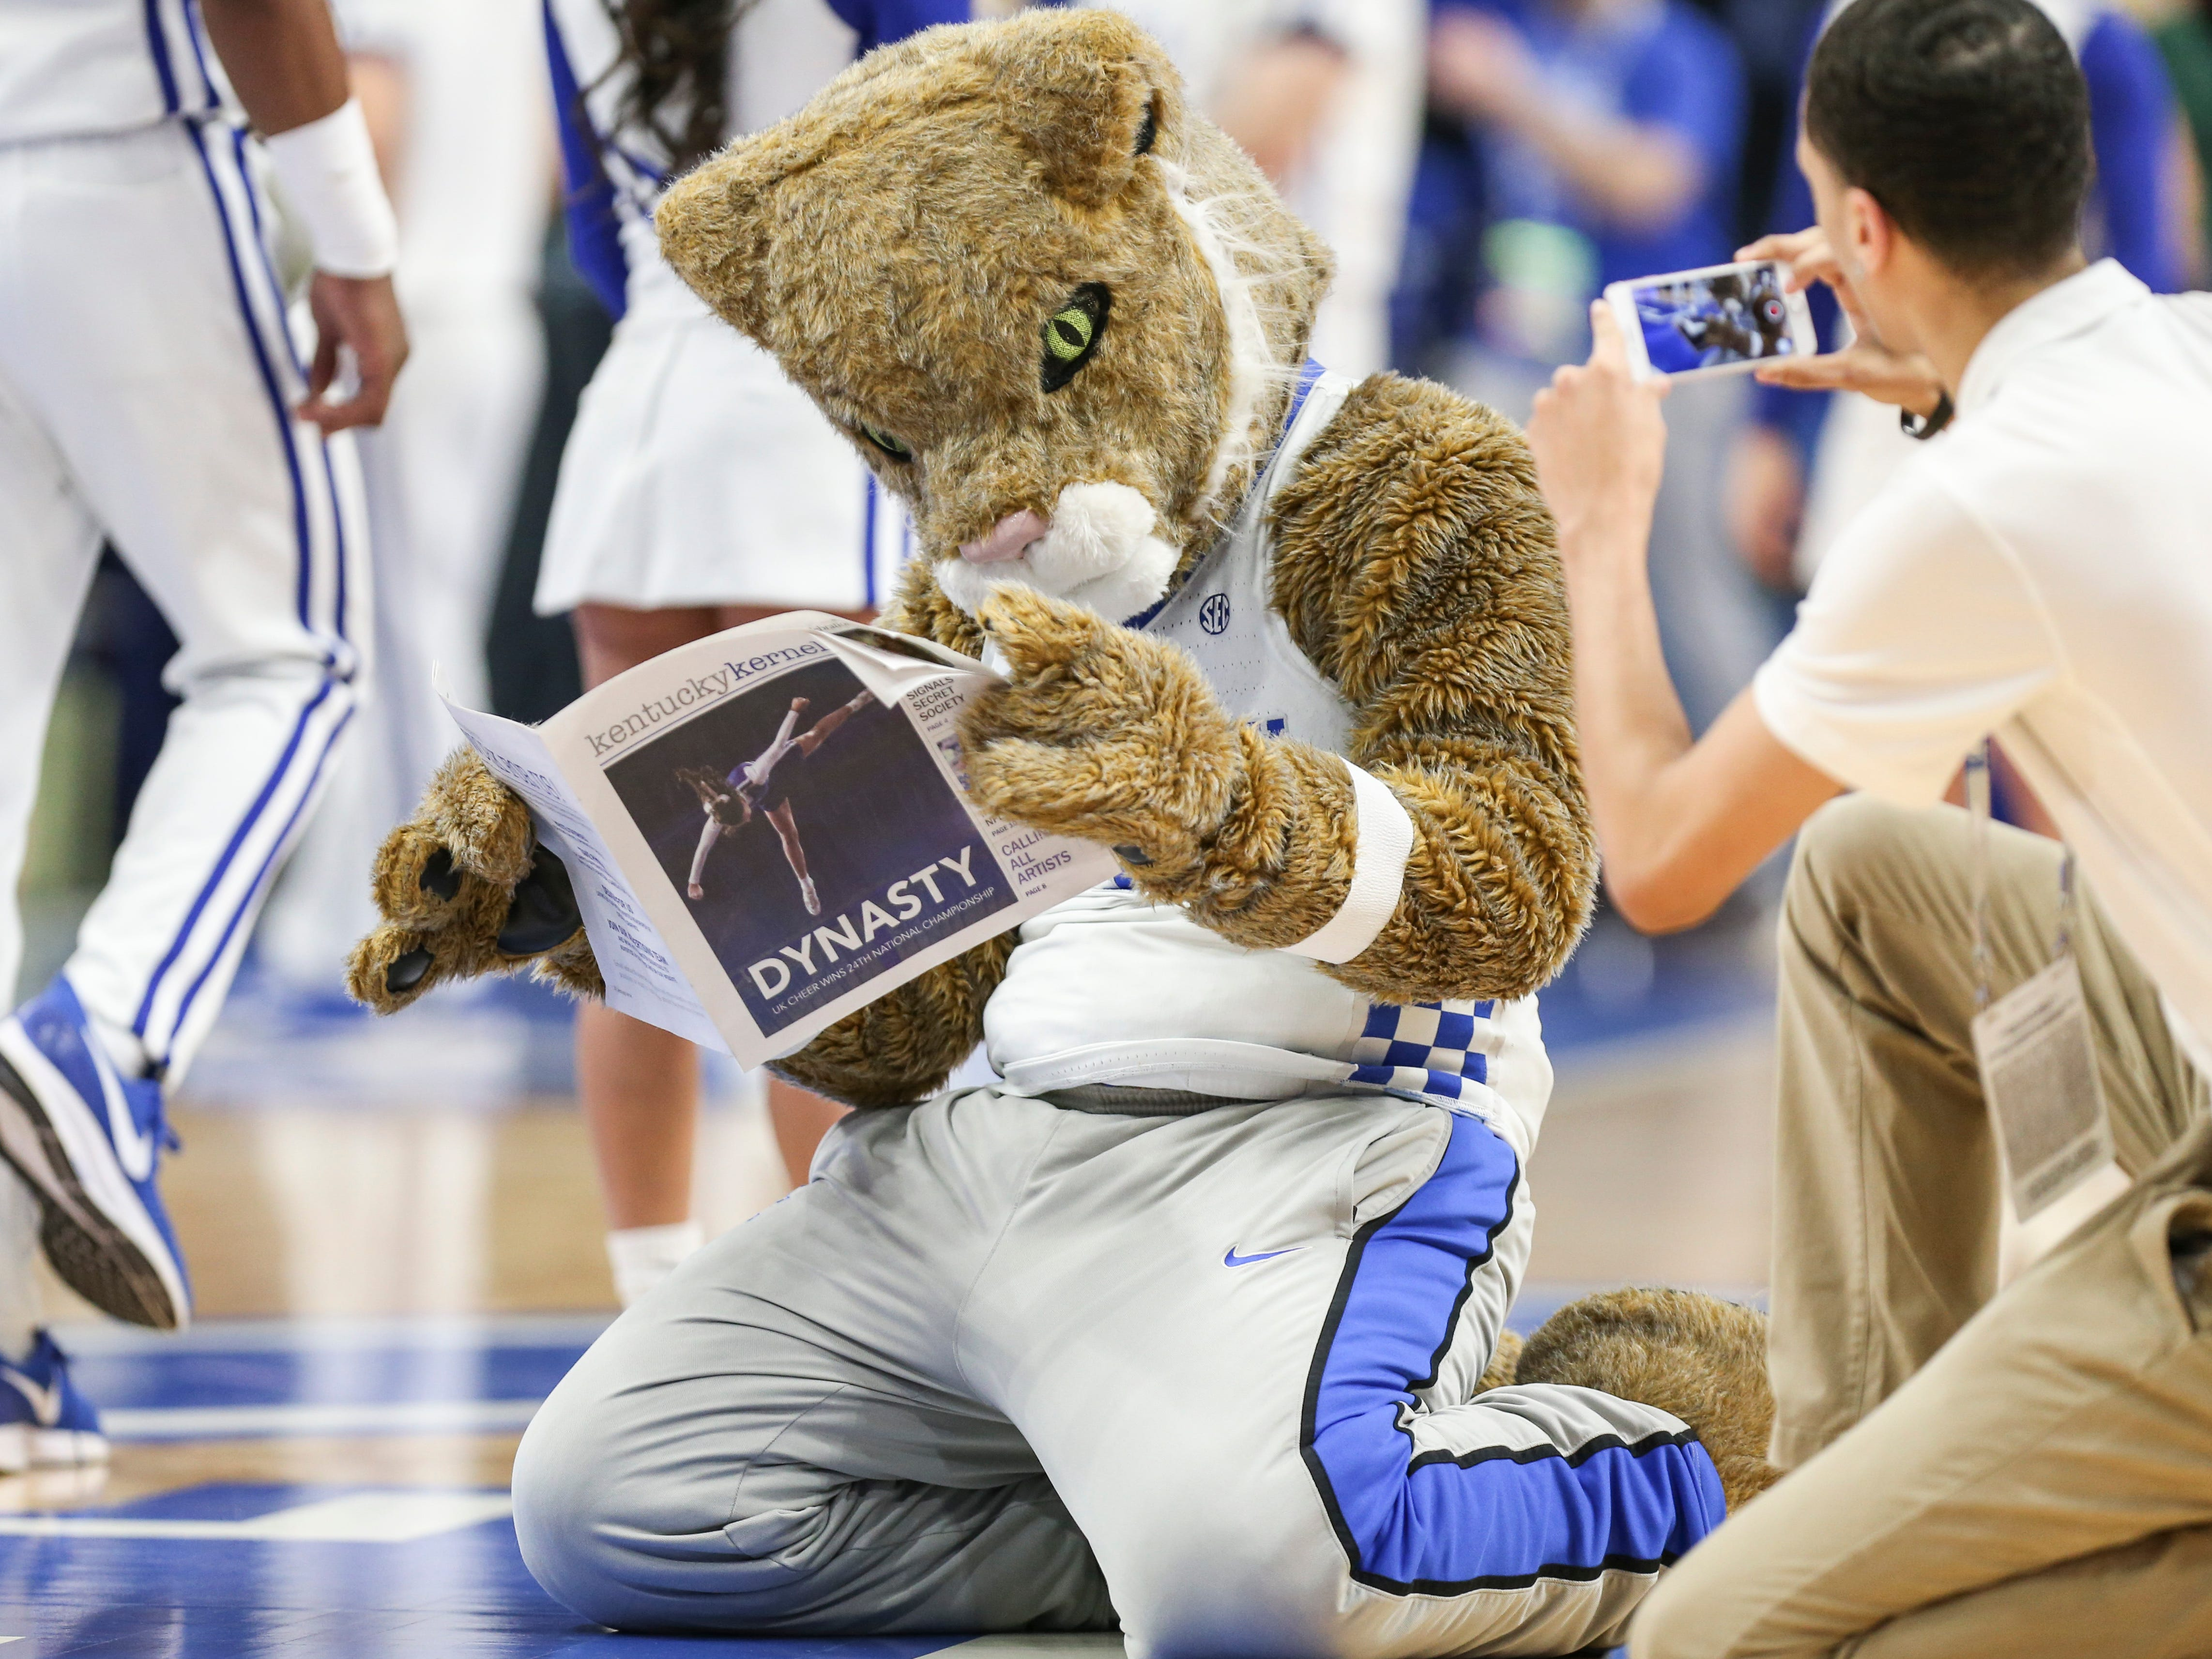 The Kentucky Wildcat read the Kentucky Kernel, the student newspaper, before the game against South Carolina. Feb. 5, 2019